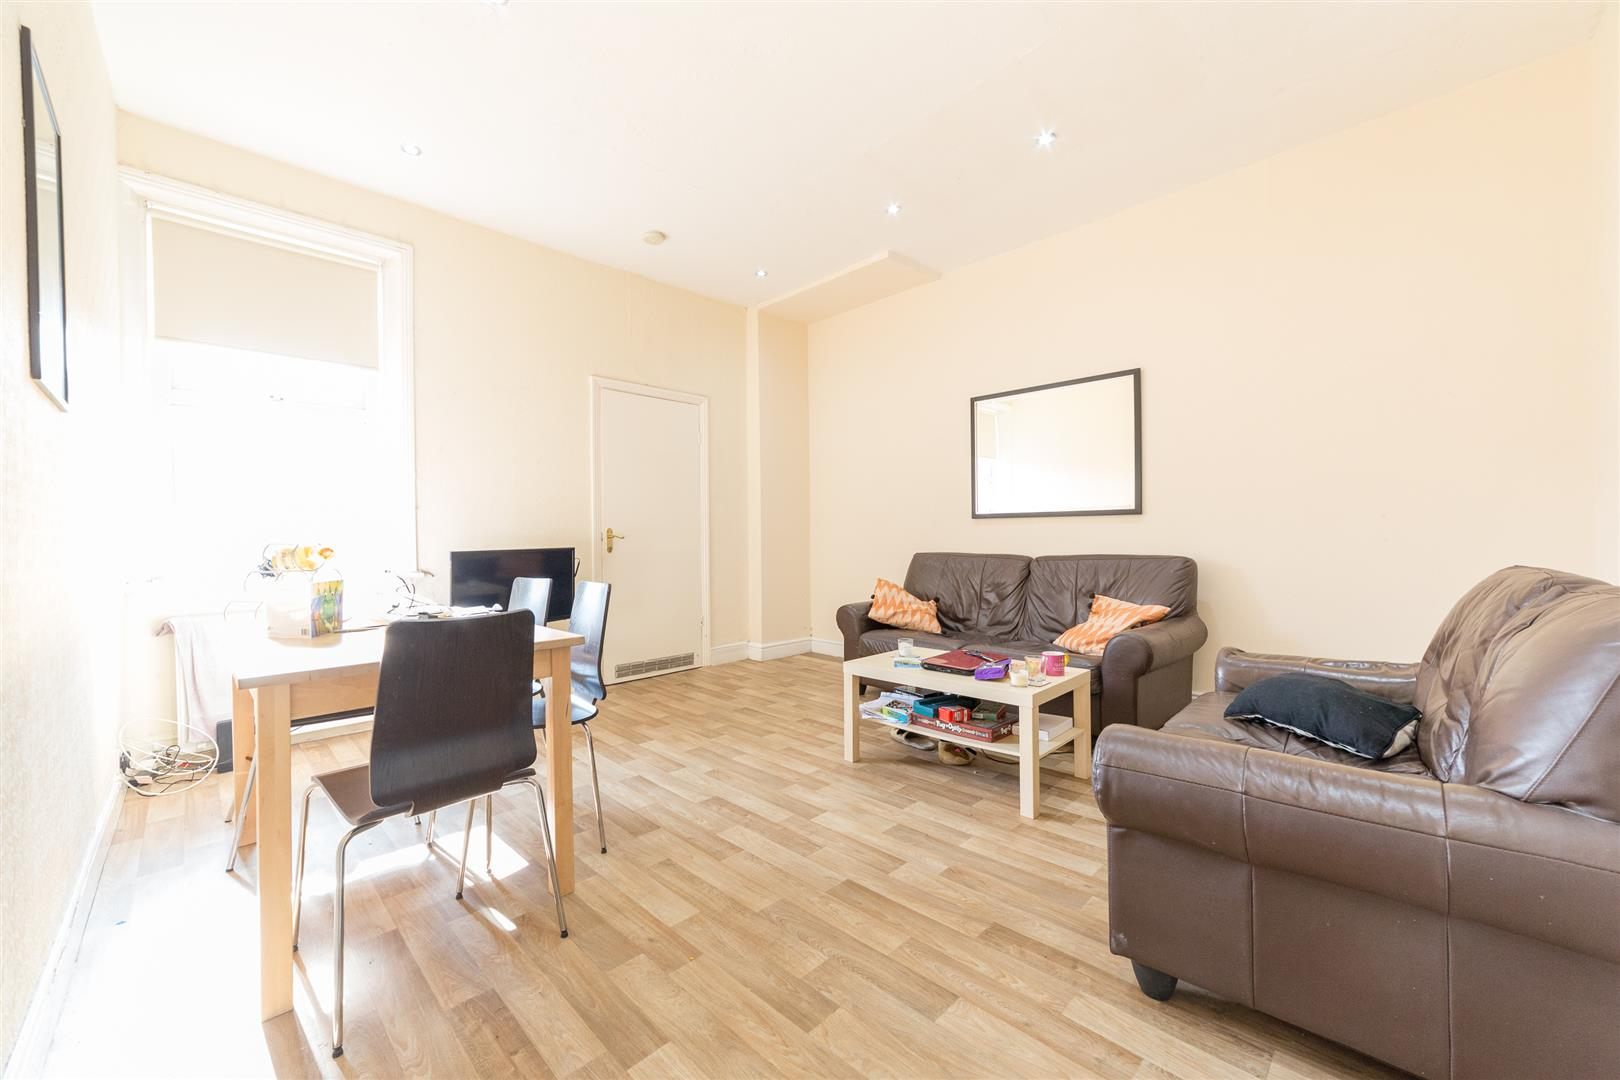 3 bed flat to rent in Jesmond, NE2 3HR, NE2